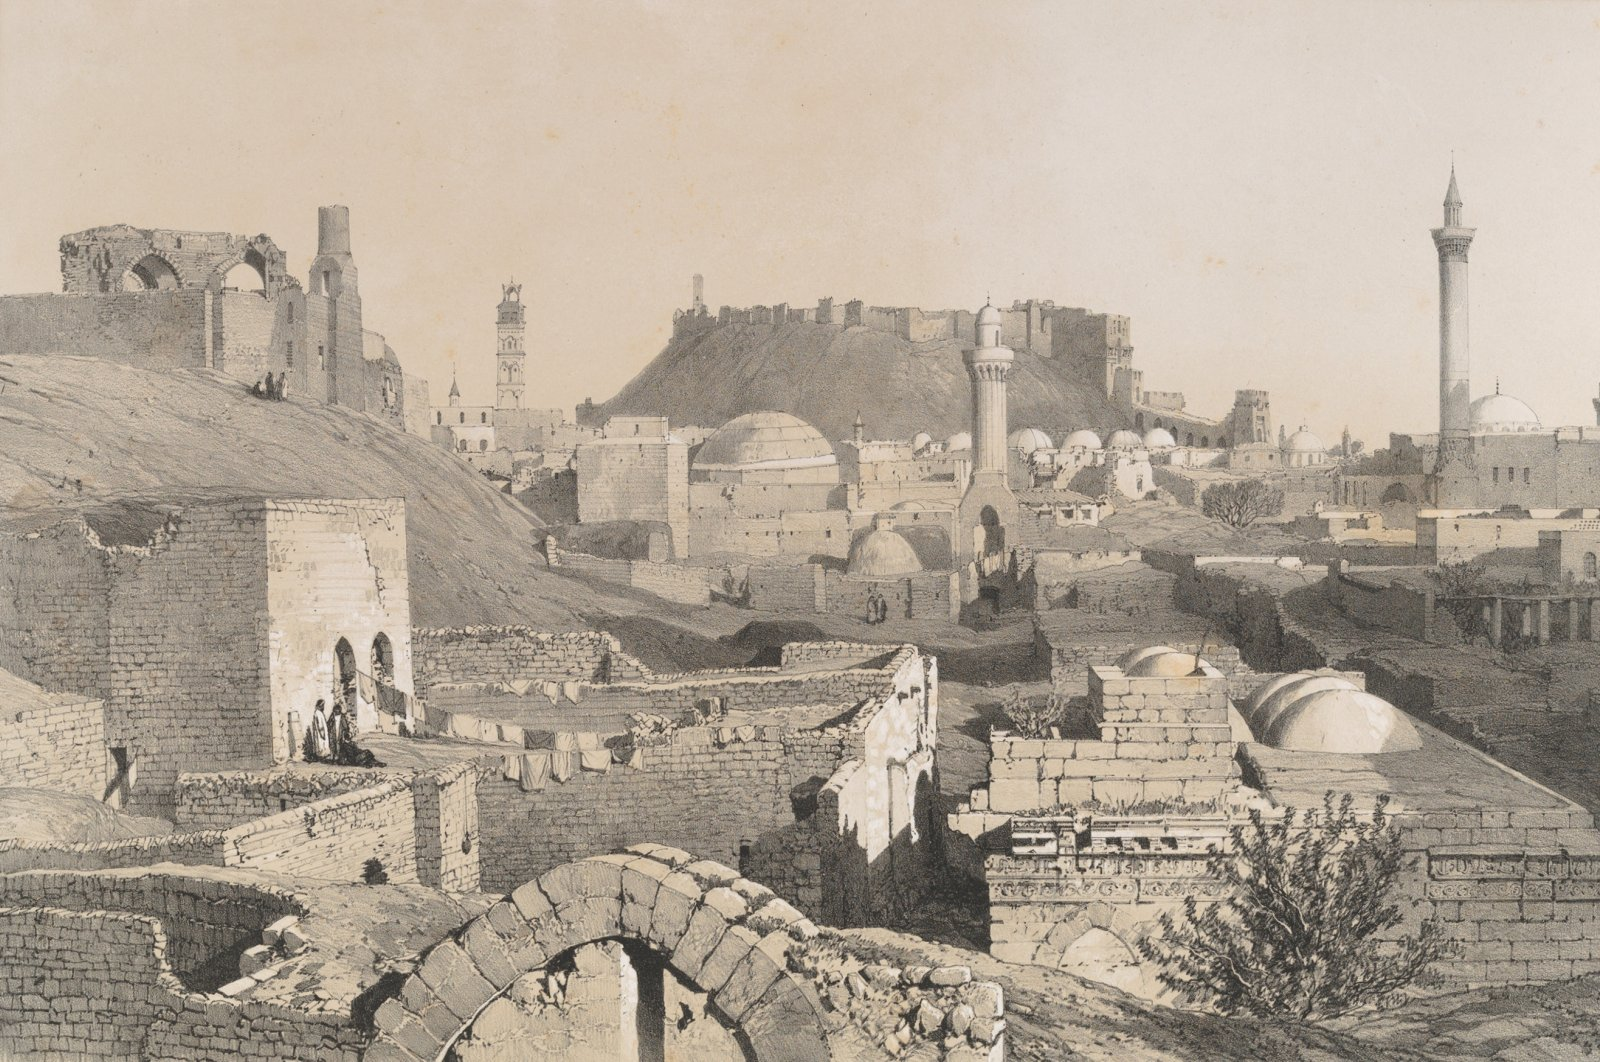 Aleppo documents in Ottoman archives to be displayed in Azaz